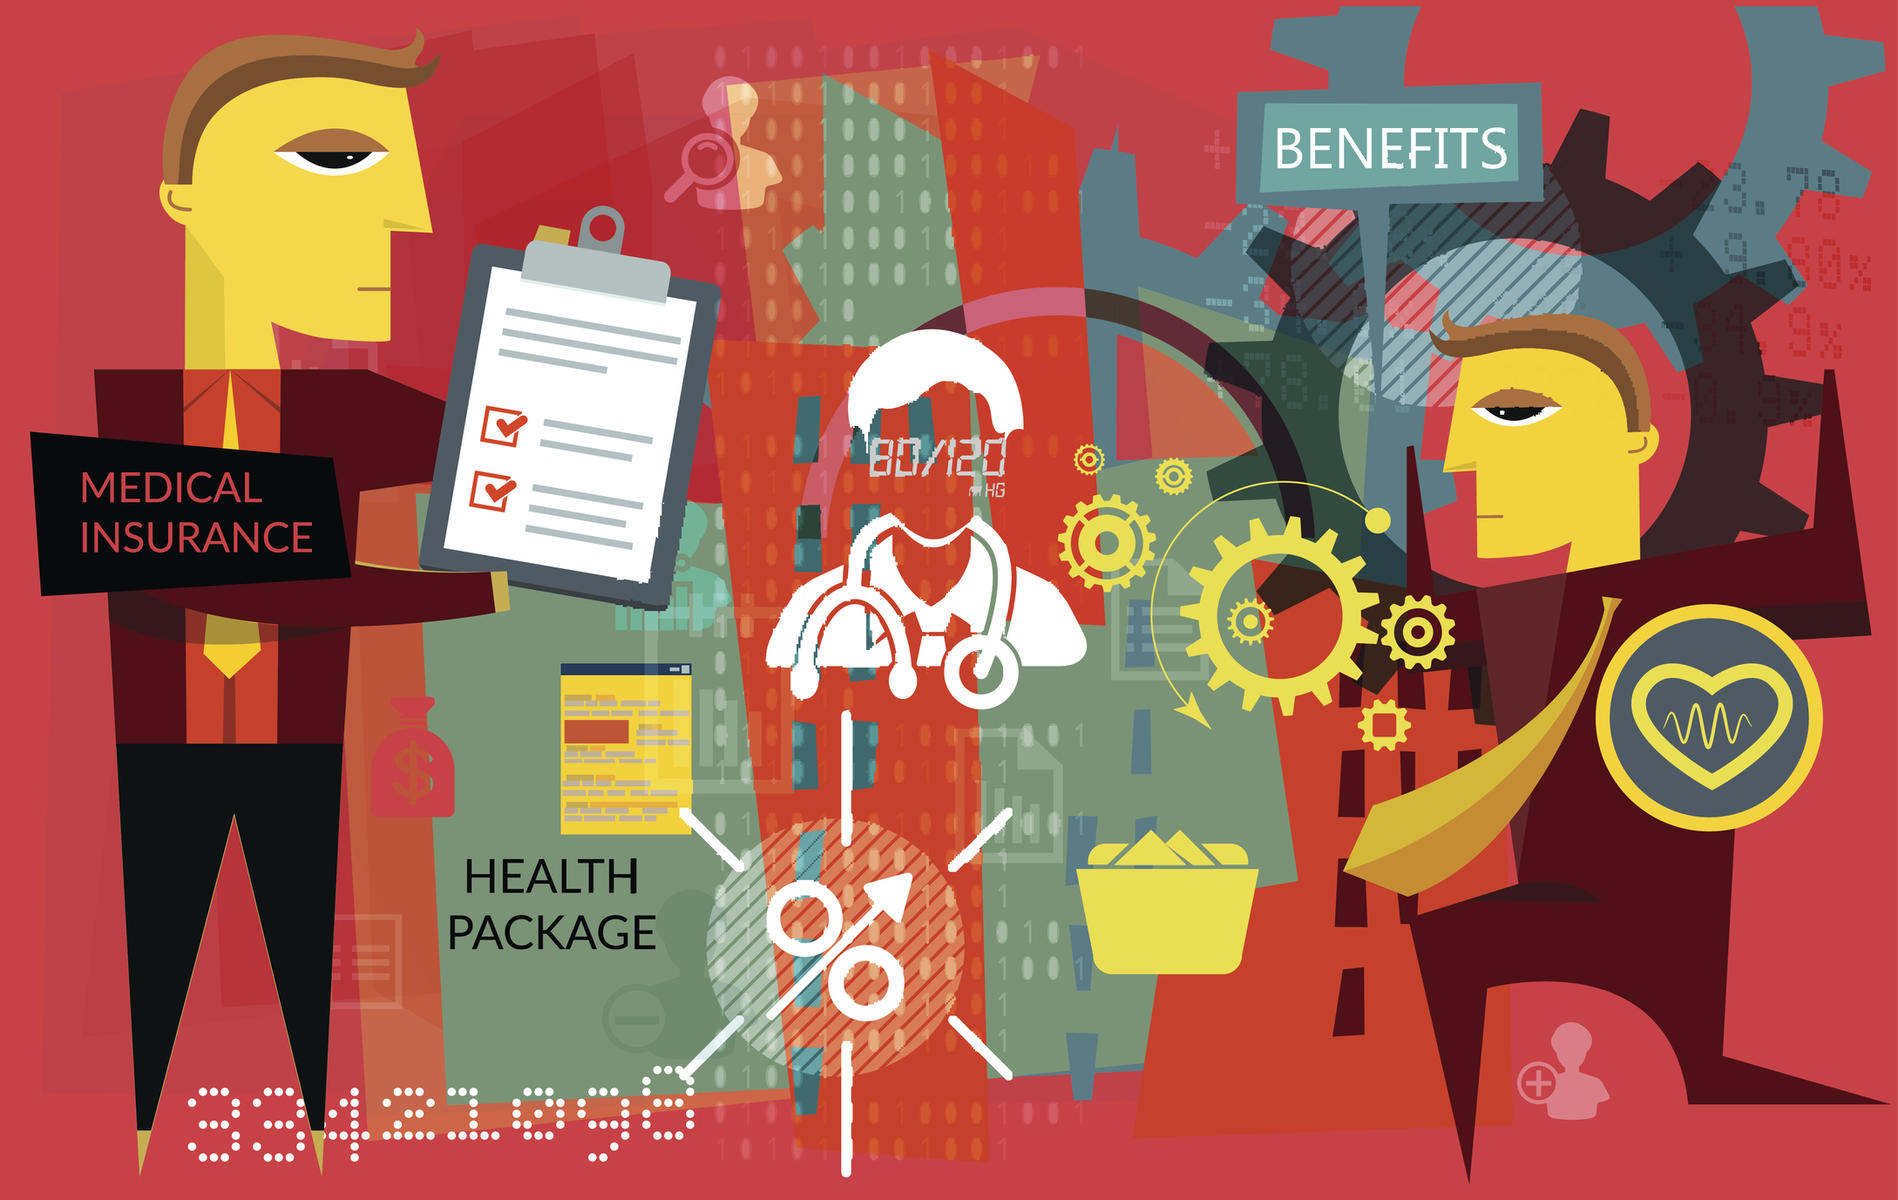 Health insurance benefits illustration